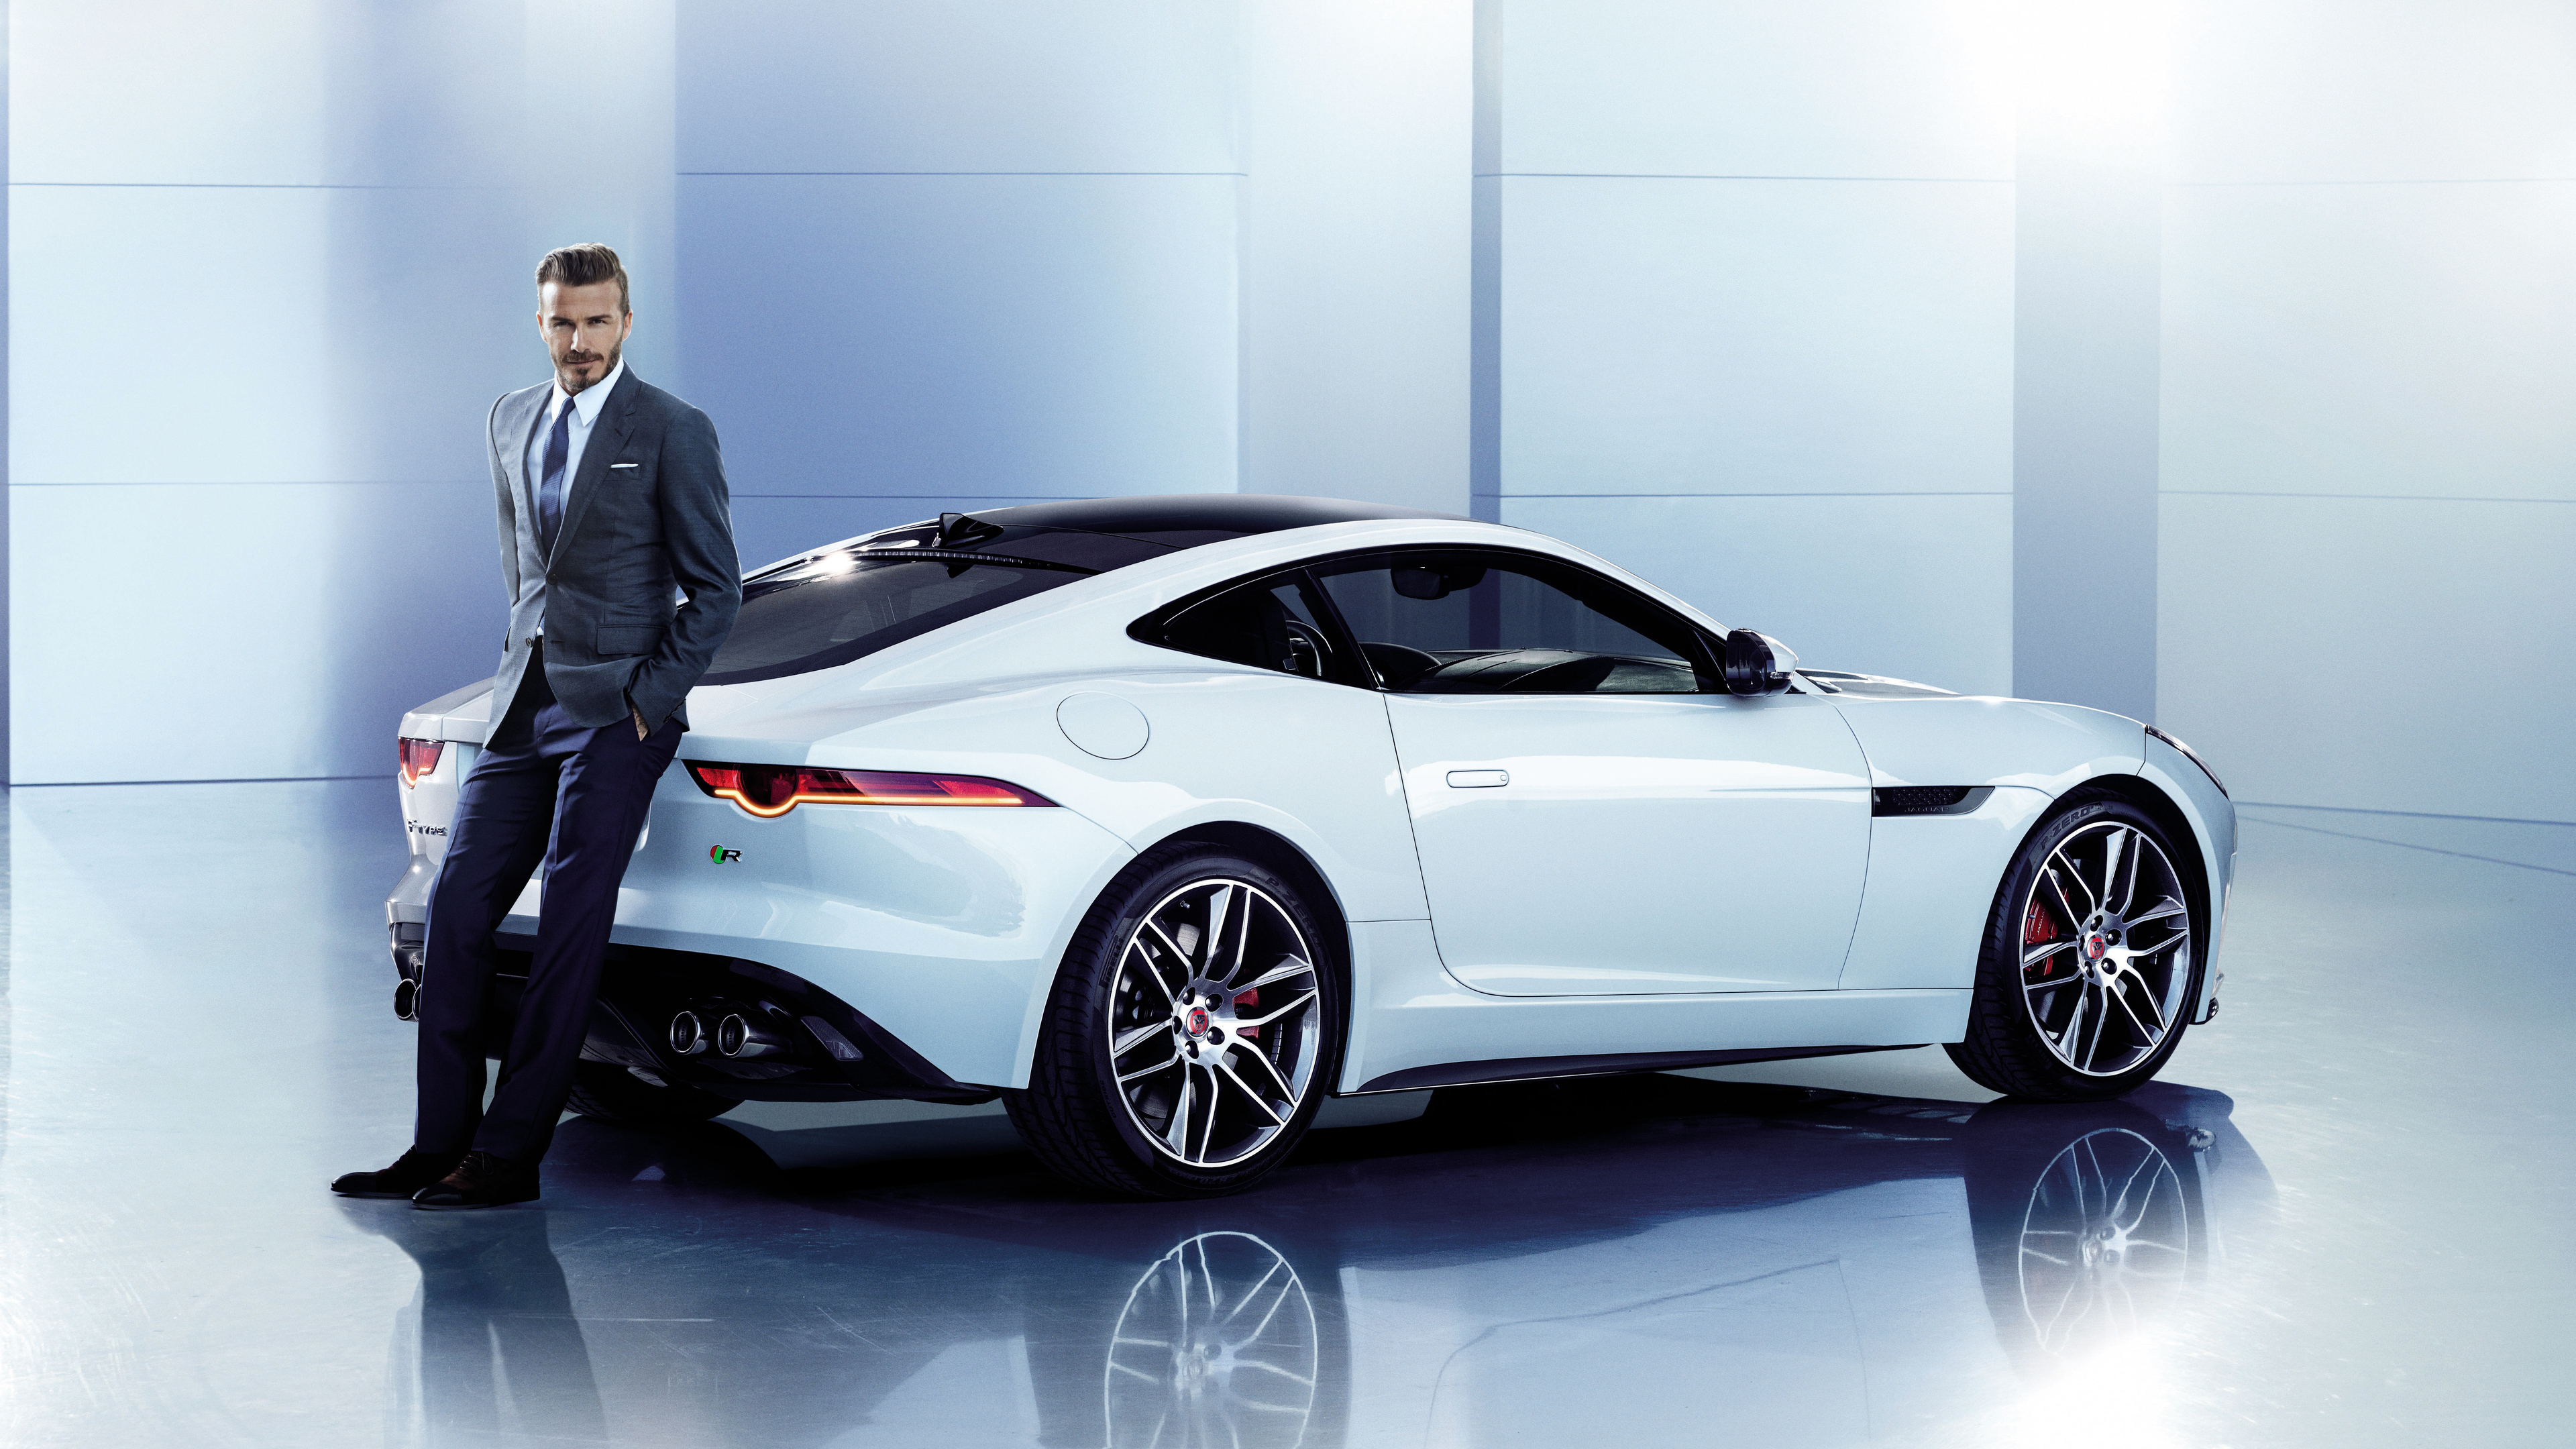 david beckham jaguar 4k 1547938891 - David Beckham Jaguar 4k - sports wallpapers, male celebrities wallpapers, jaguar wallpapers, hd-wallpapers, david beckham wallpapers, boys wallpapers, 4k-wallpapers